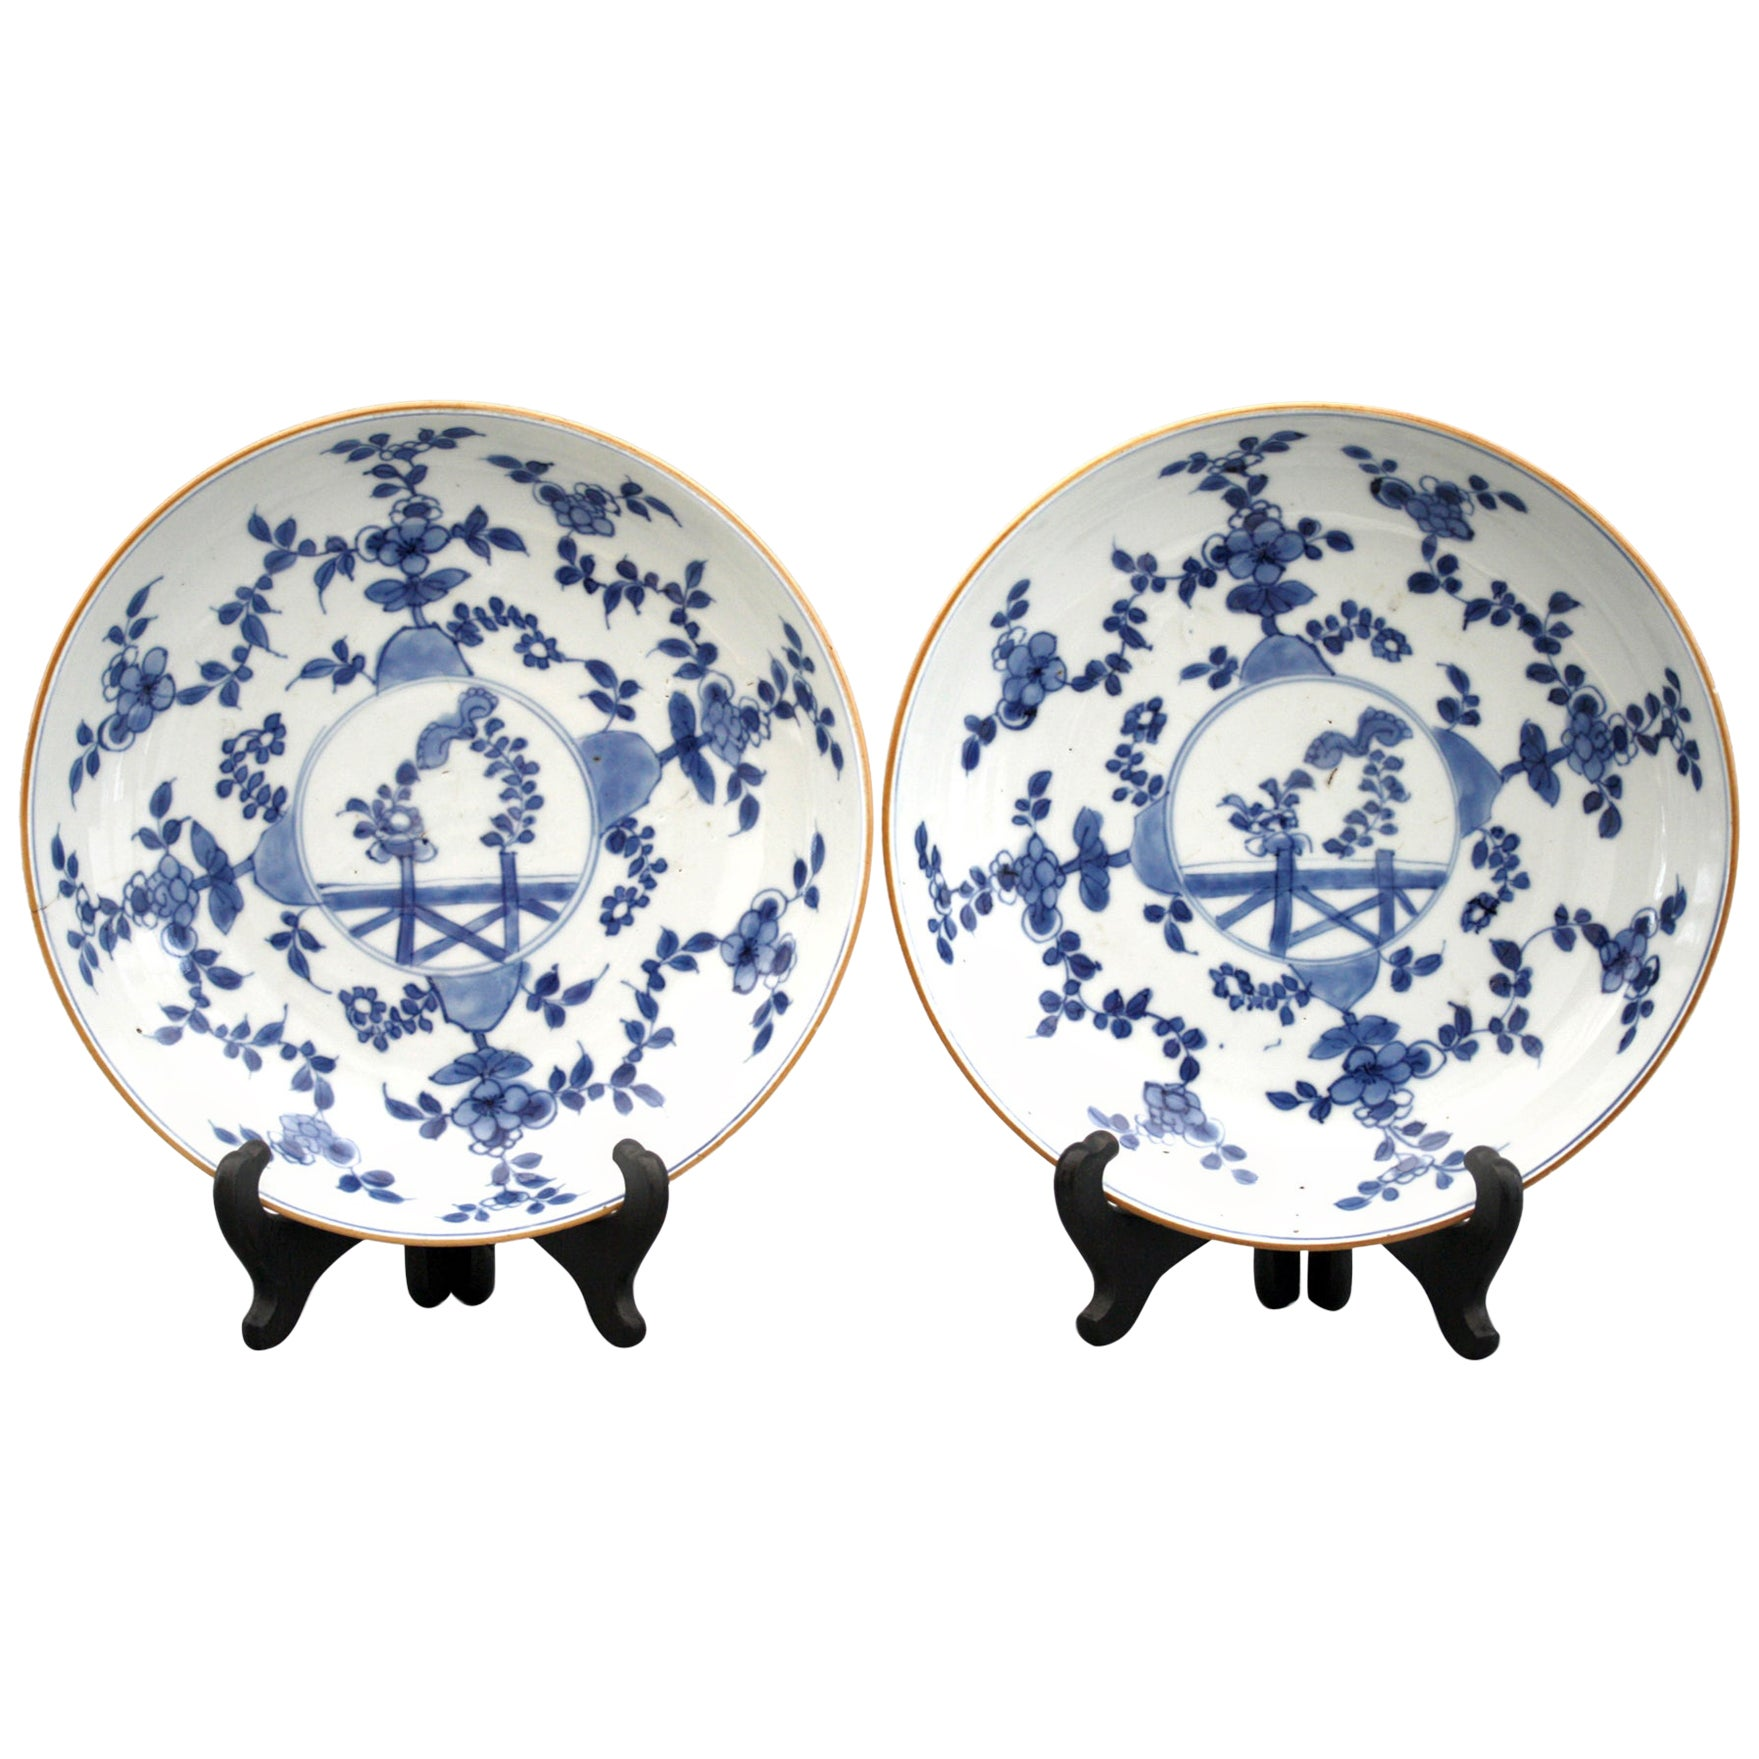 Chinese Pair of Kangxi Blue and White Painted Floral Porcelain Plates